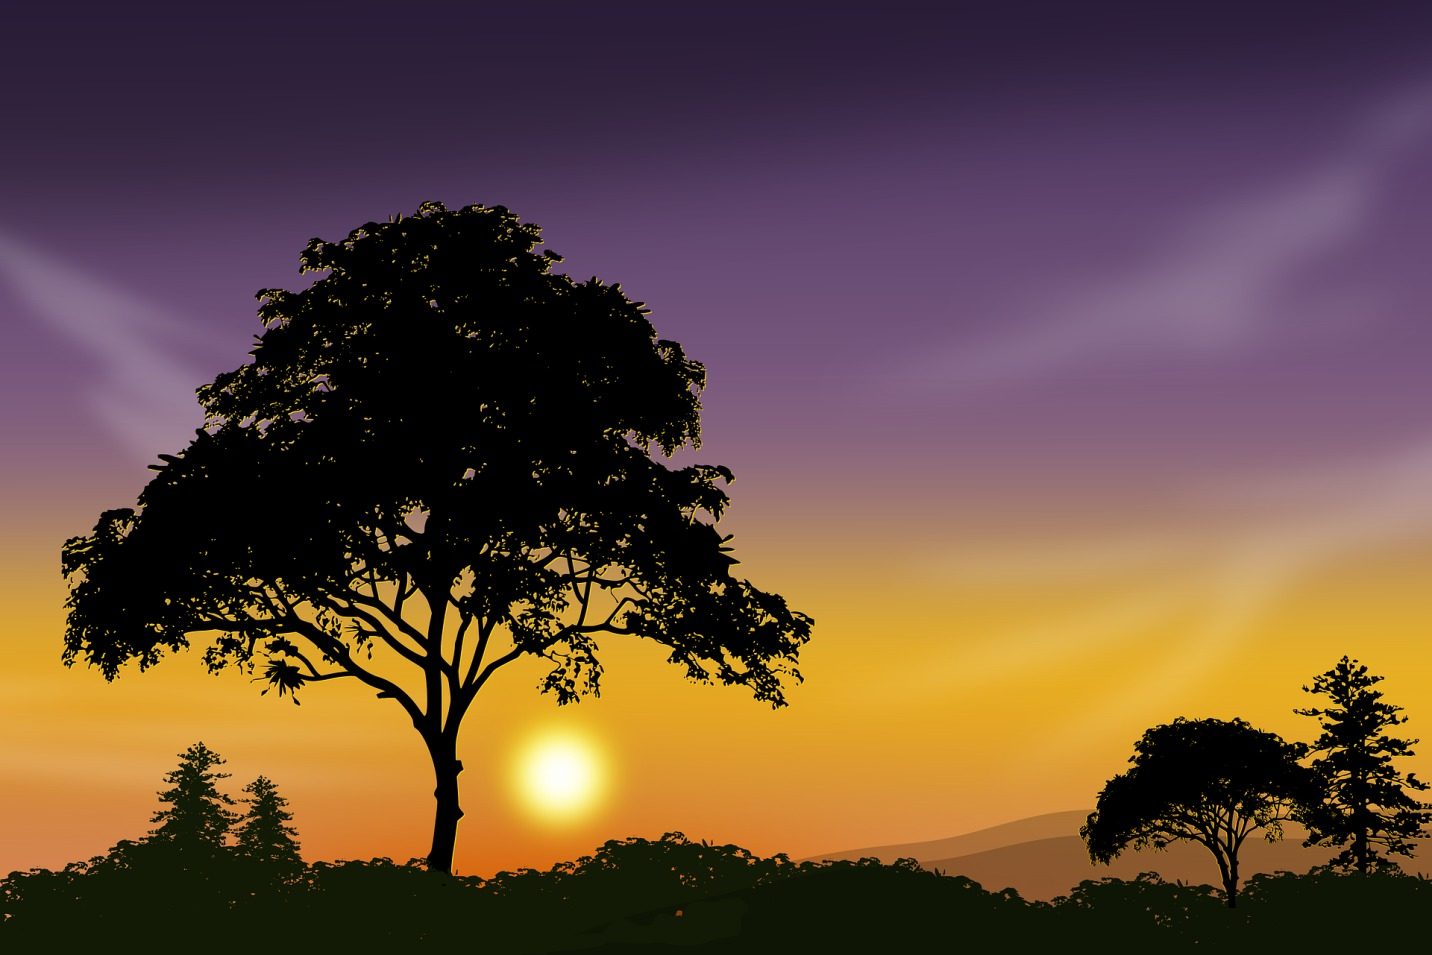 tree-silhouette-against-purple-sky1432px